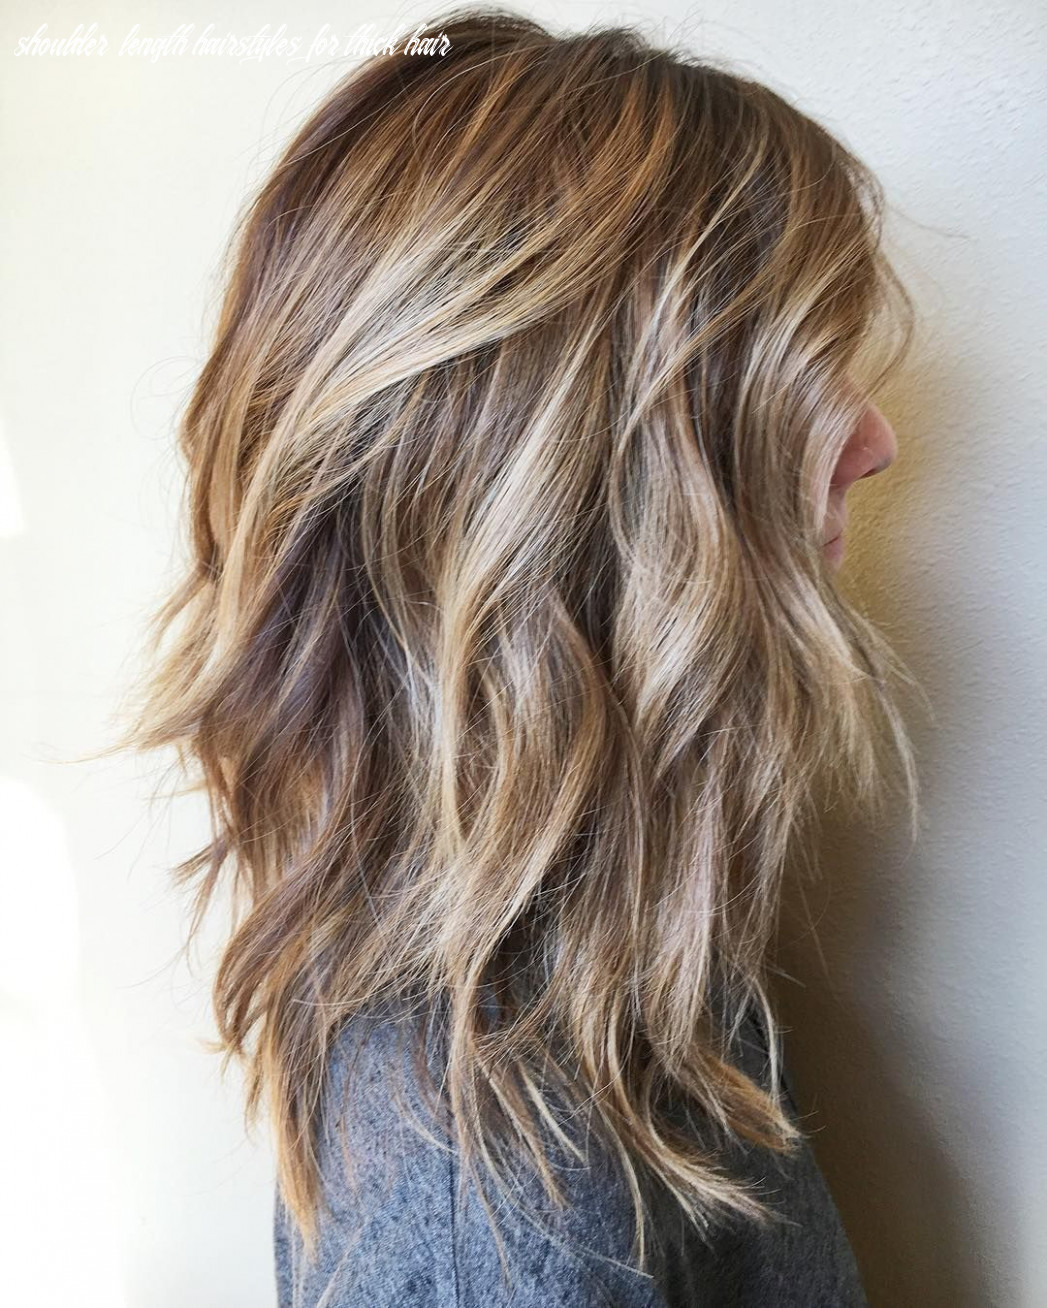 12 Messy Medium Hairstyles for Thick Hair 12 | Long hair styles ...